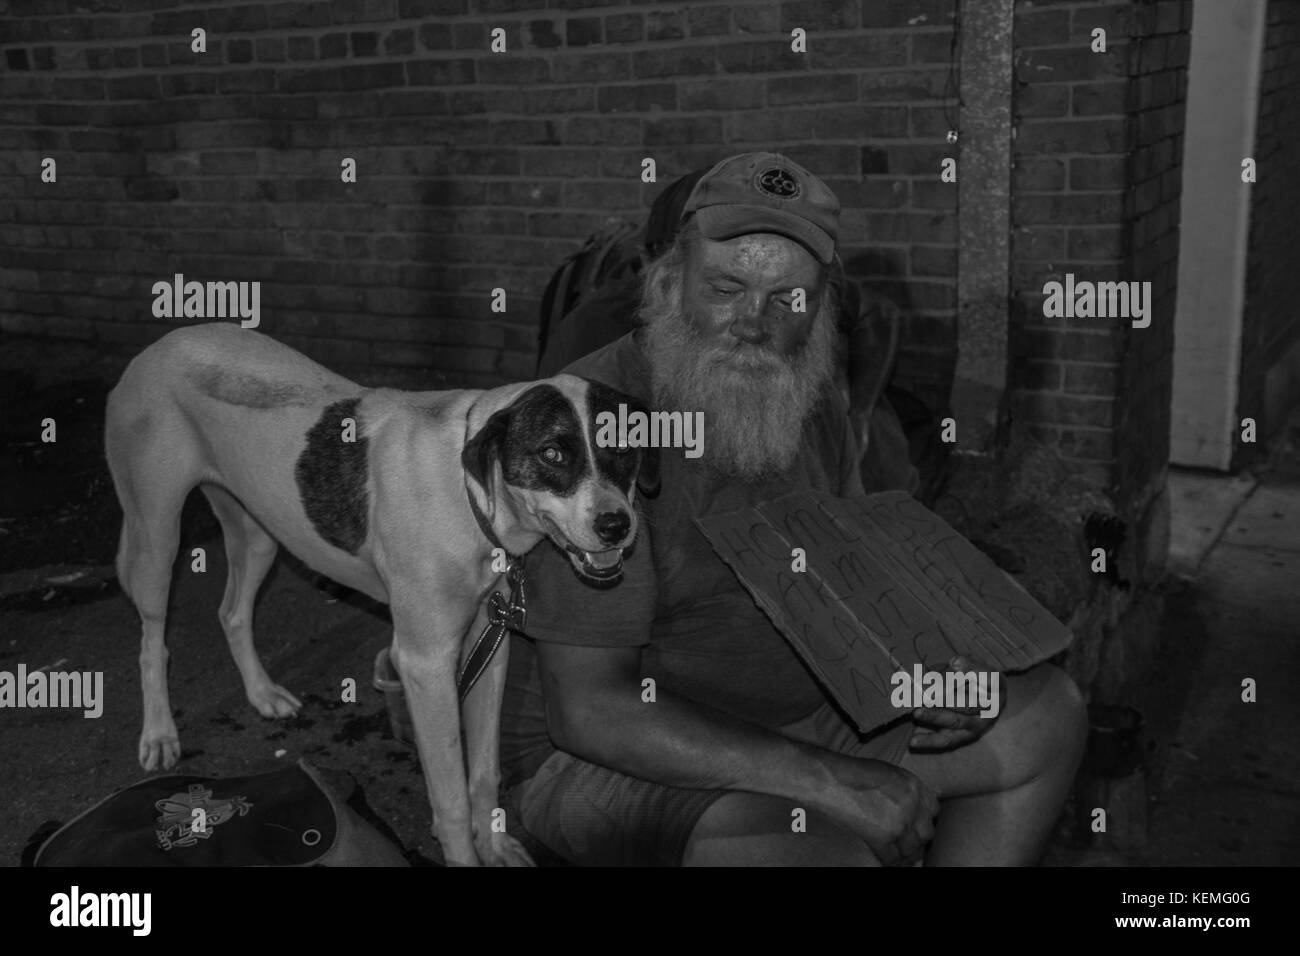 Homeless man and his dog Stock Photo